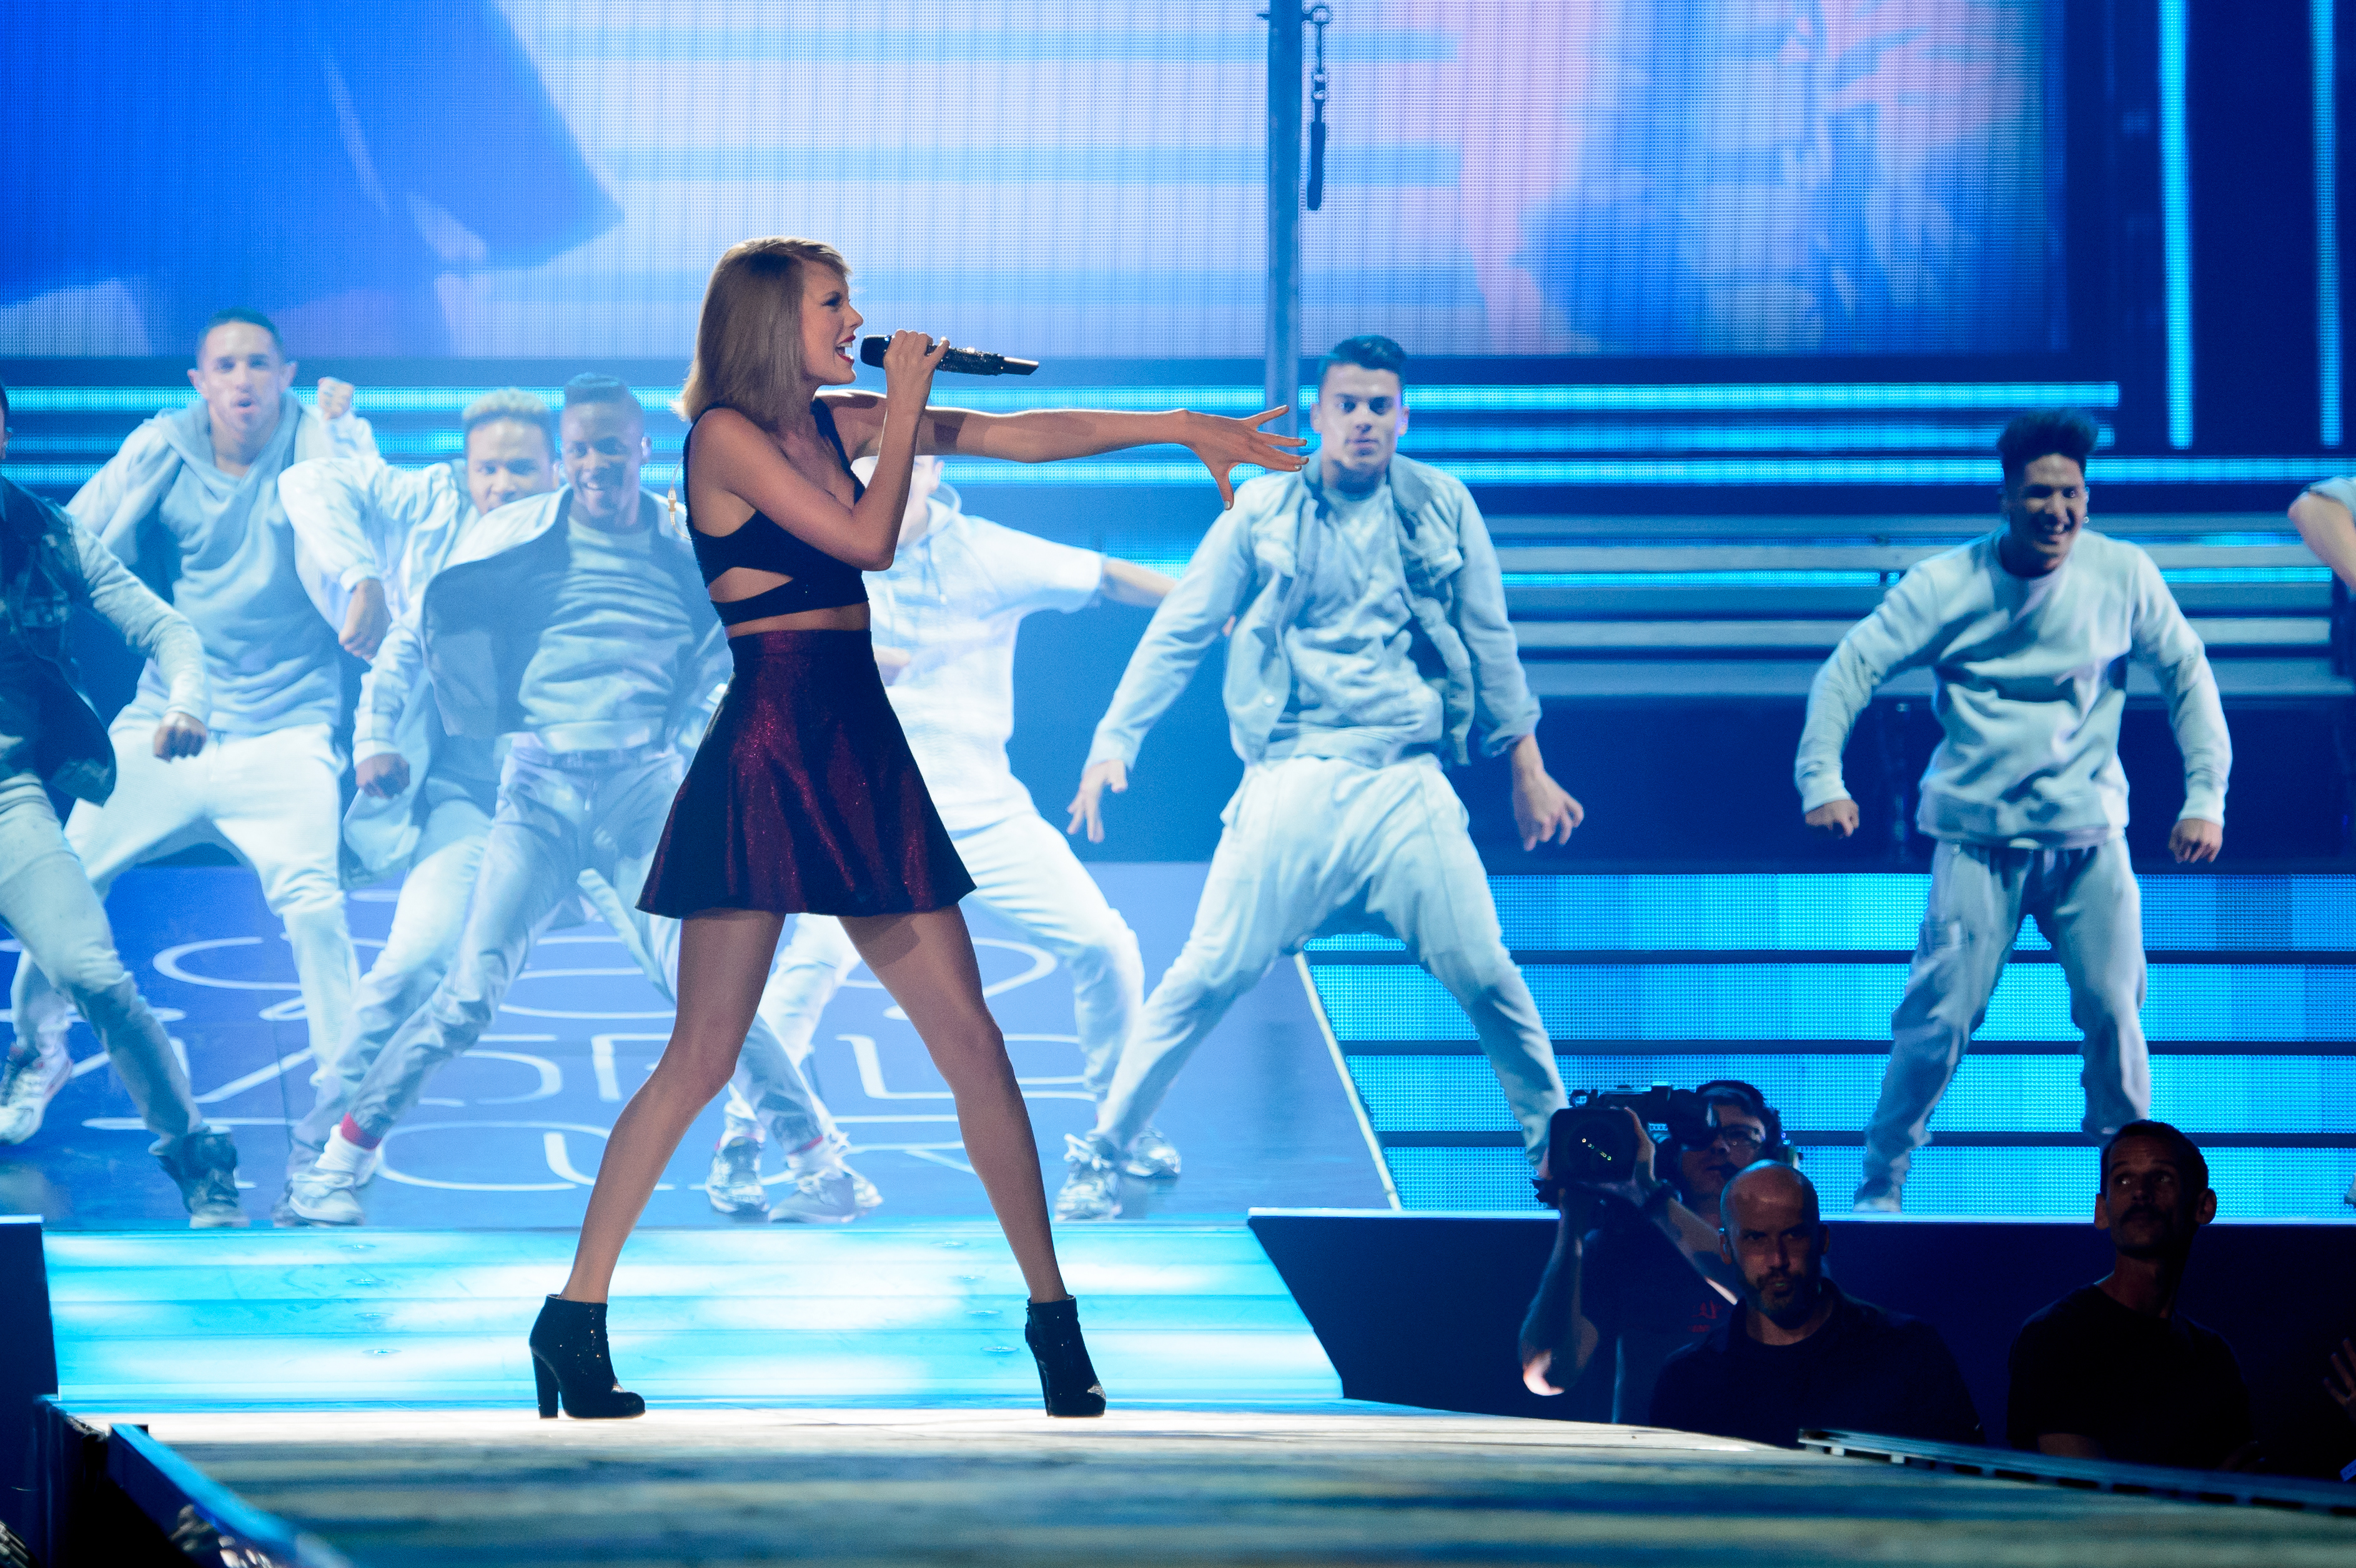 Taylor Swift performs on stage for the 1989 World Tour at CenturyLink Center on May 20, 2015 in Bossier City, La.